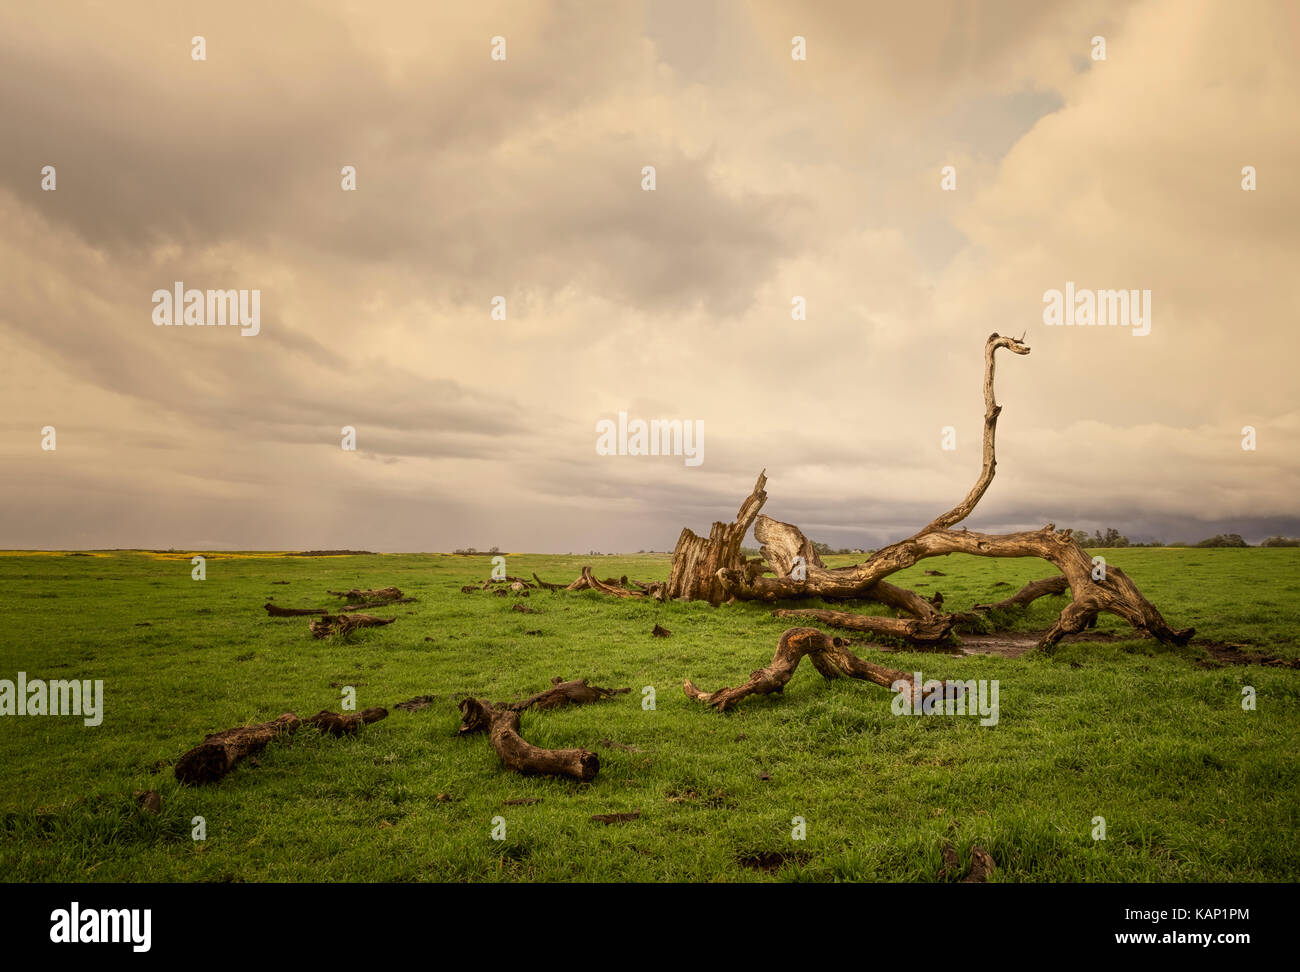 Clouds over a dead tree in an  empty pasture in rural Northern California. - Stock Image